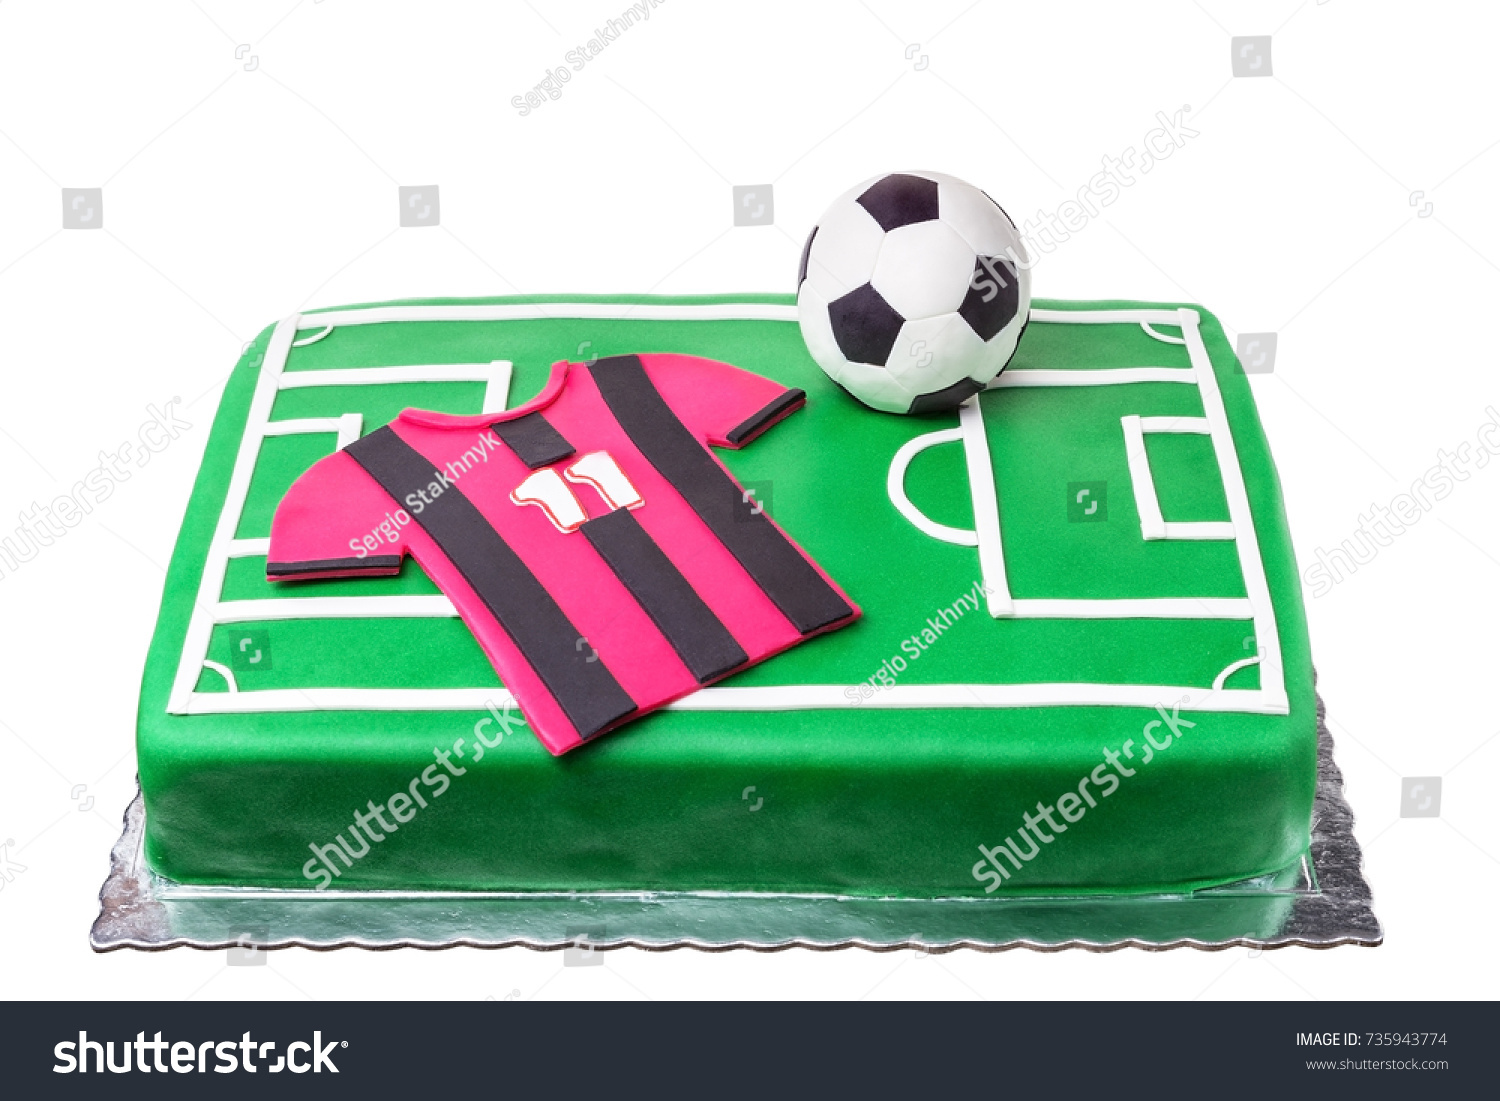 Birthday Cake Football Player Football Field Stock Photo Edit Now